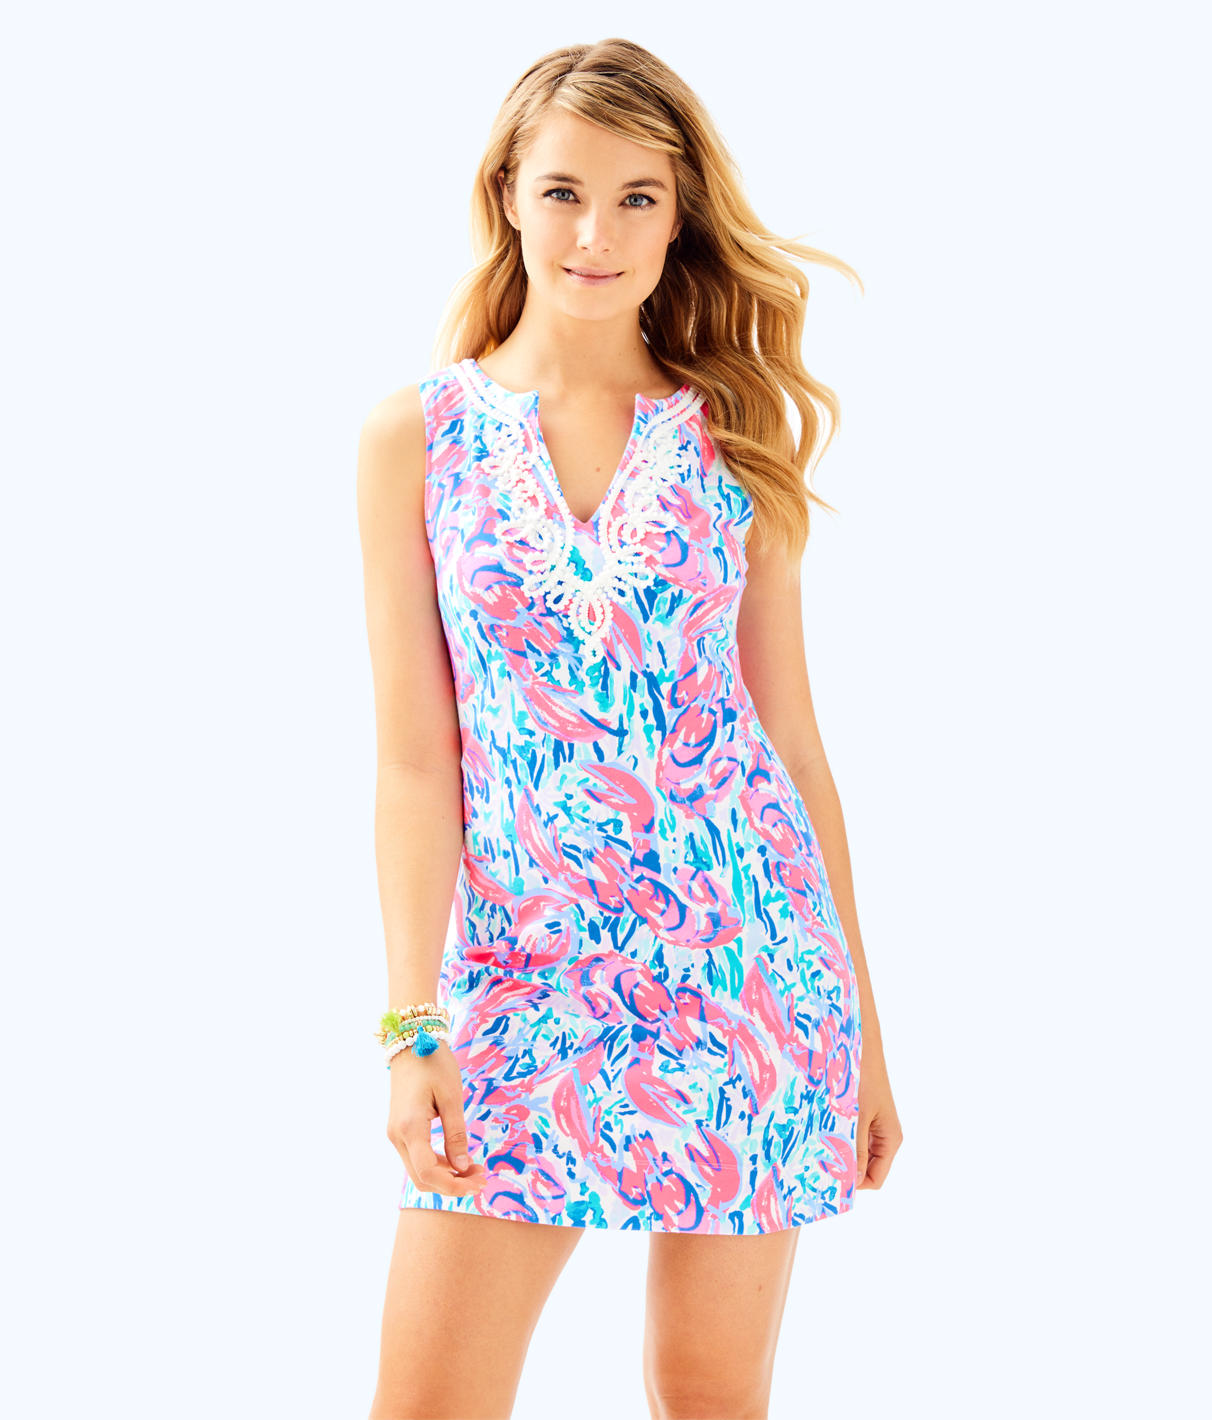 Lilly Pulitzer Lilly Pulitzer Womens Harper Shift Dress